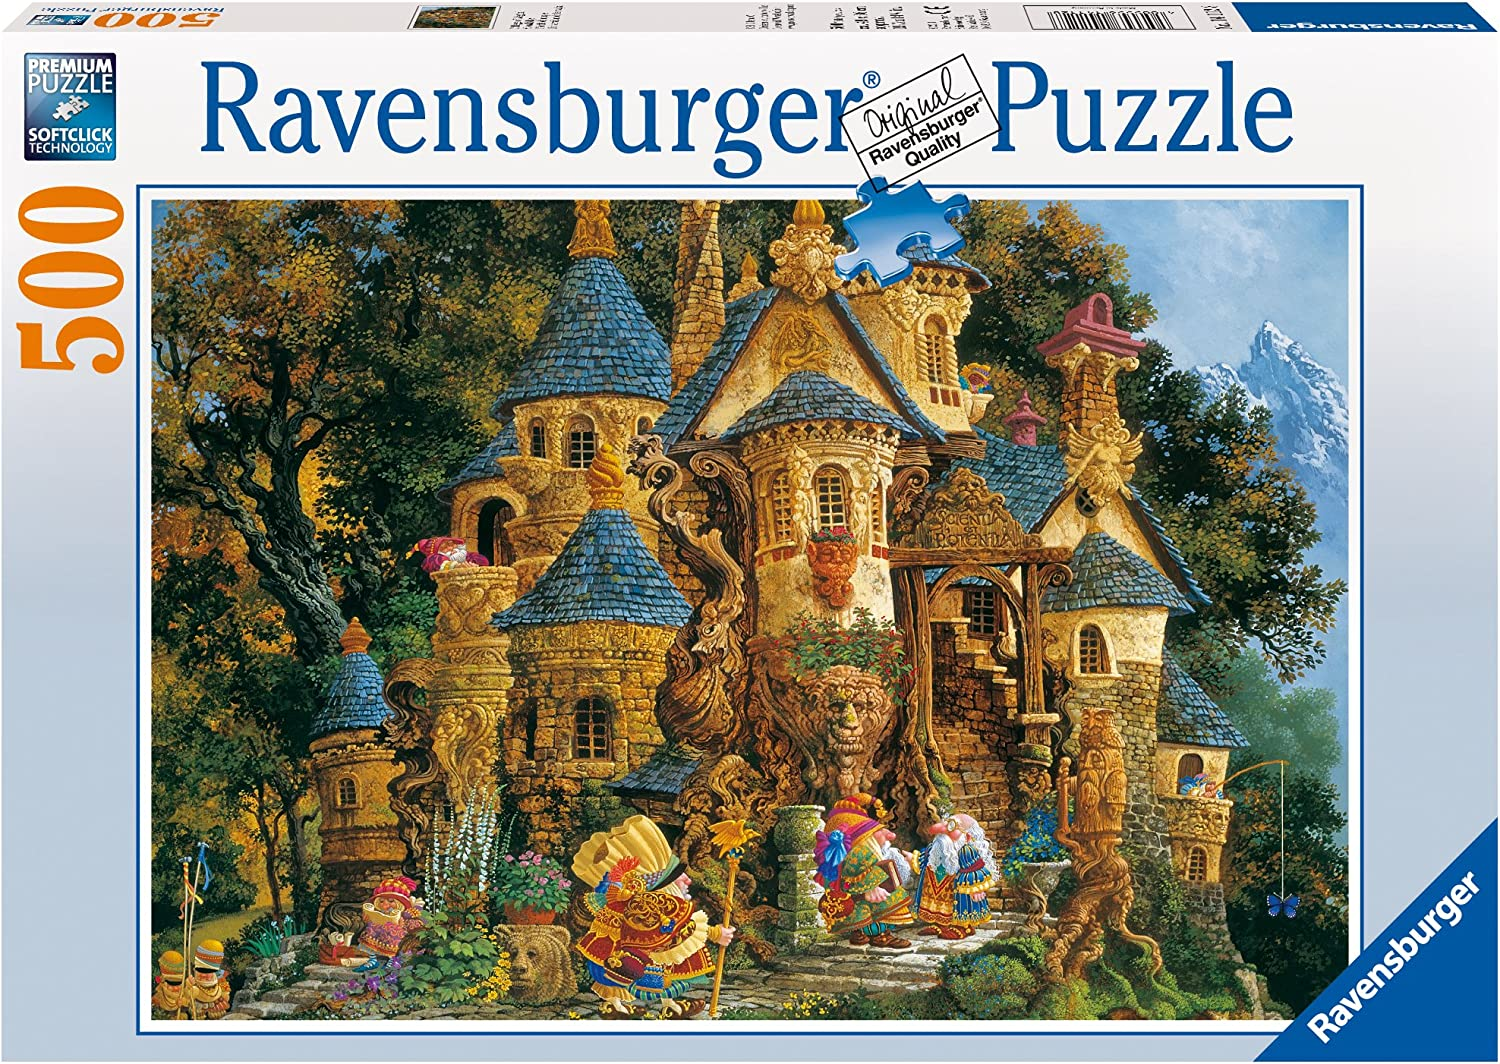 Ravensburger College of Magical Knowledge - 500 Piece Jigsaw Puzzle for Adults – Every Piece is Unique, Softclick Technology Means Pieces Fit Together Perfectly